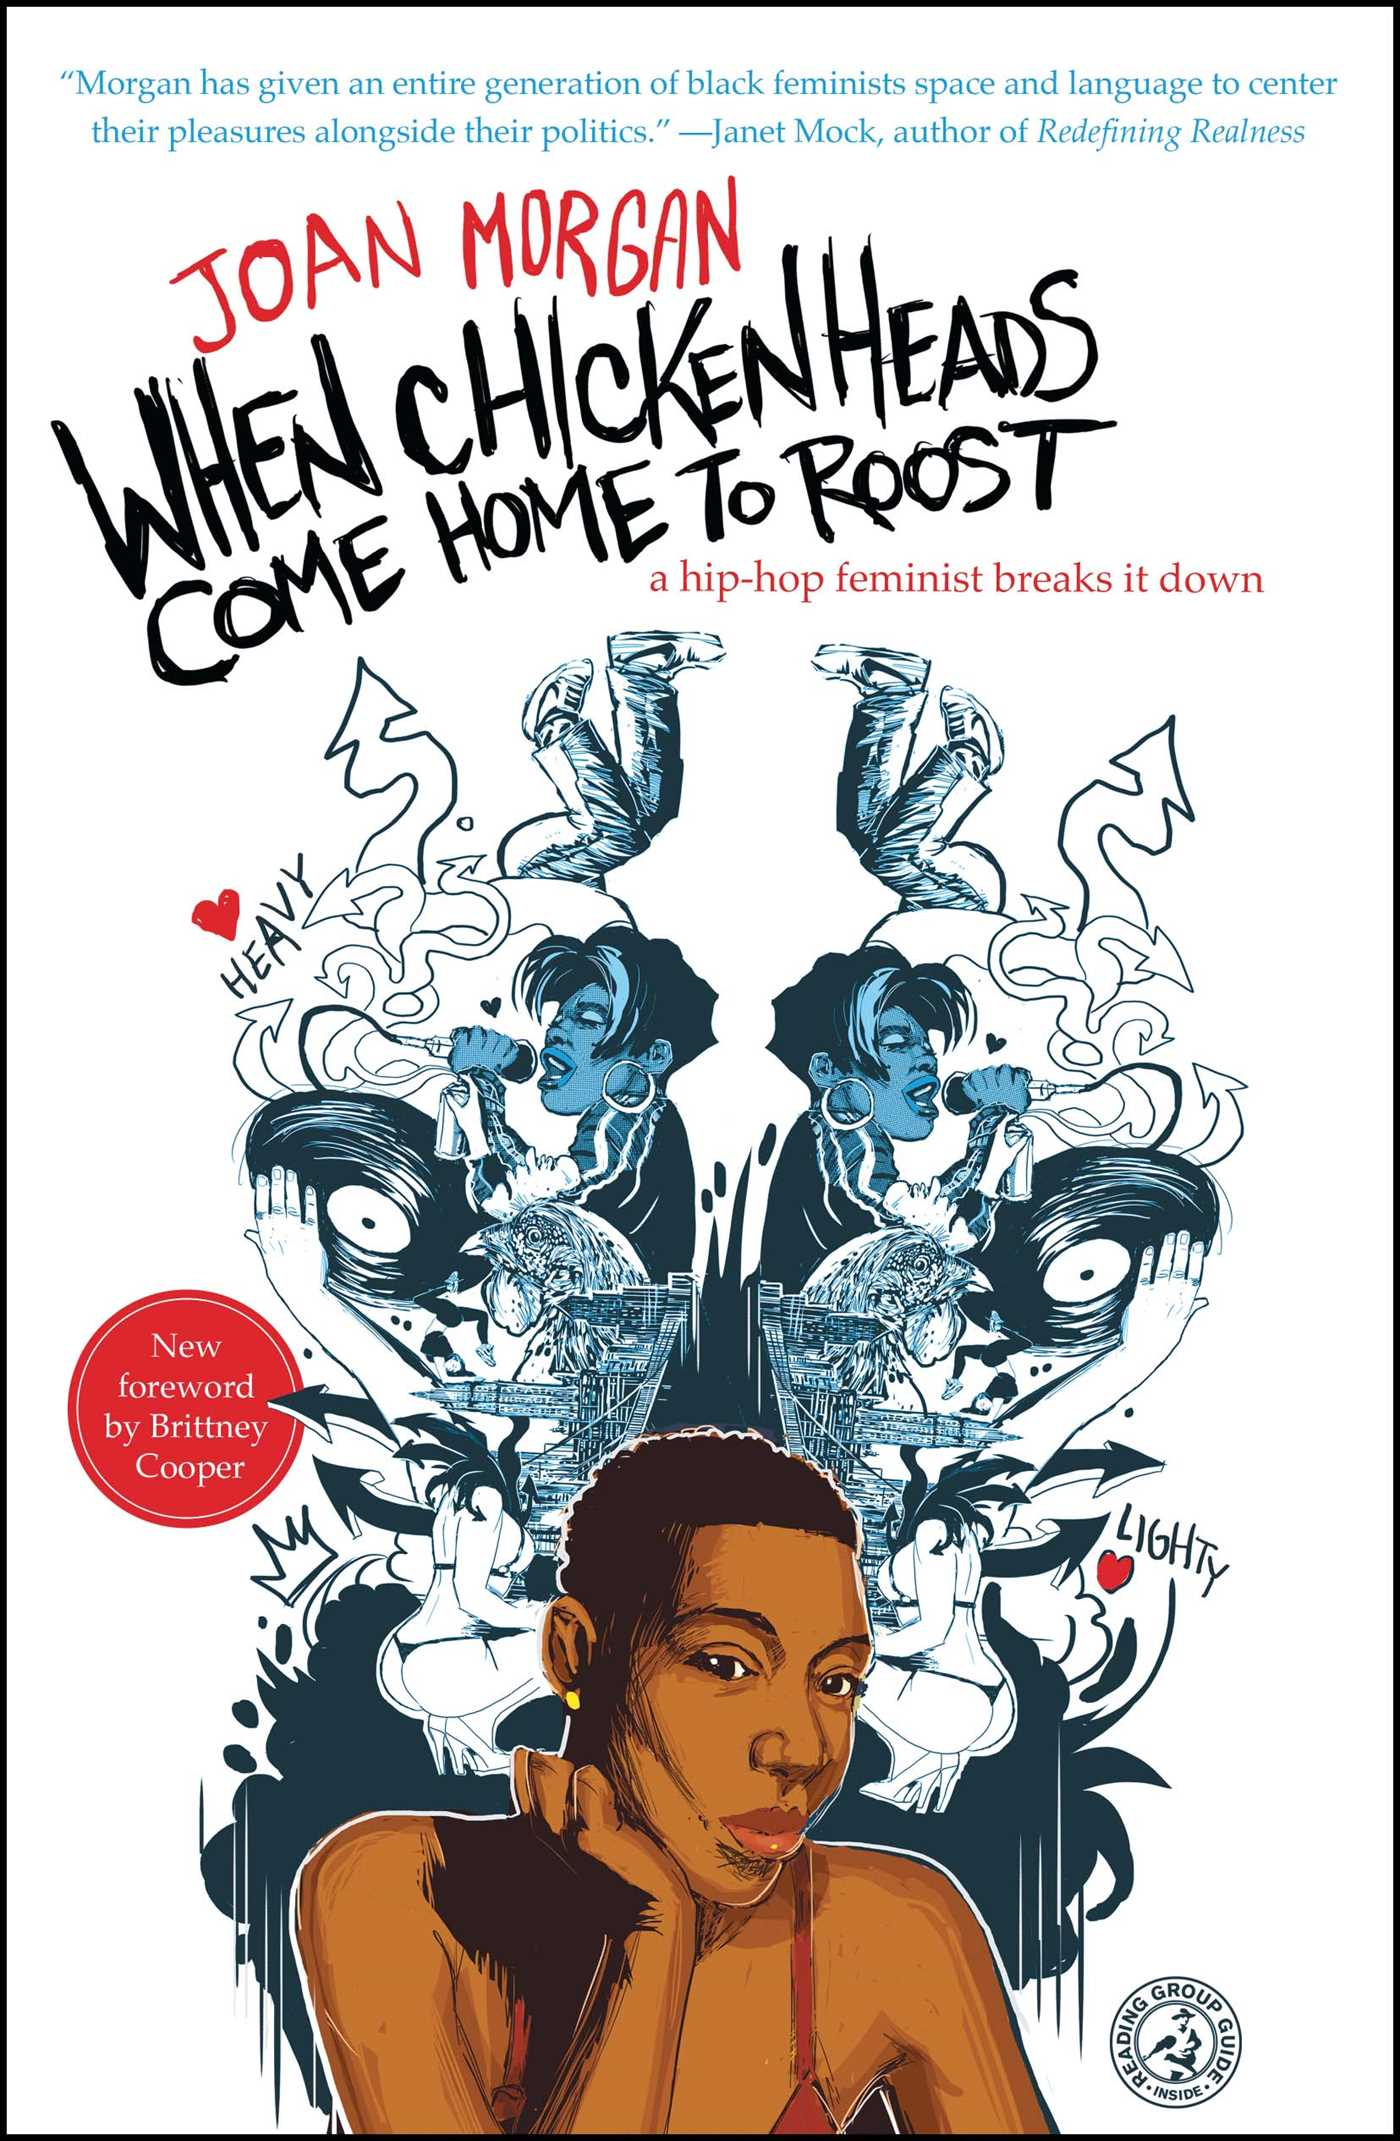 When chickenheads come home to roost book by joan morgan a hip hop feminist breaks it down fandeluxe Image collections